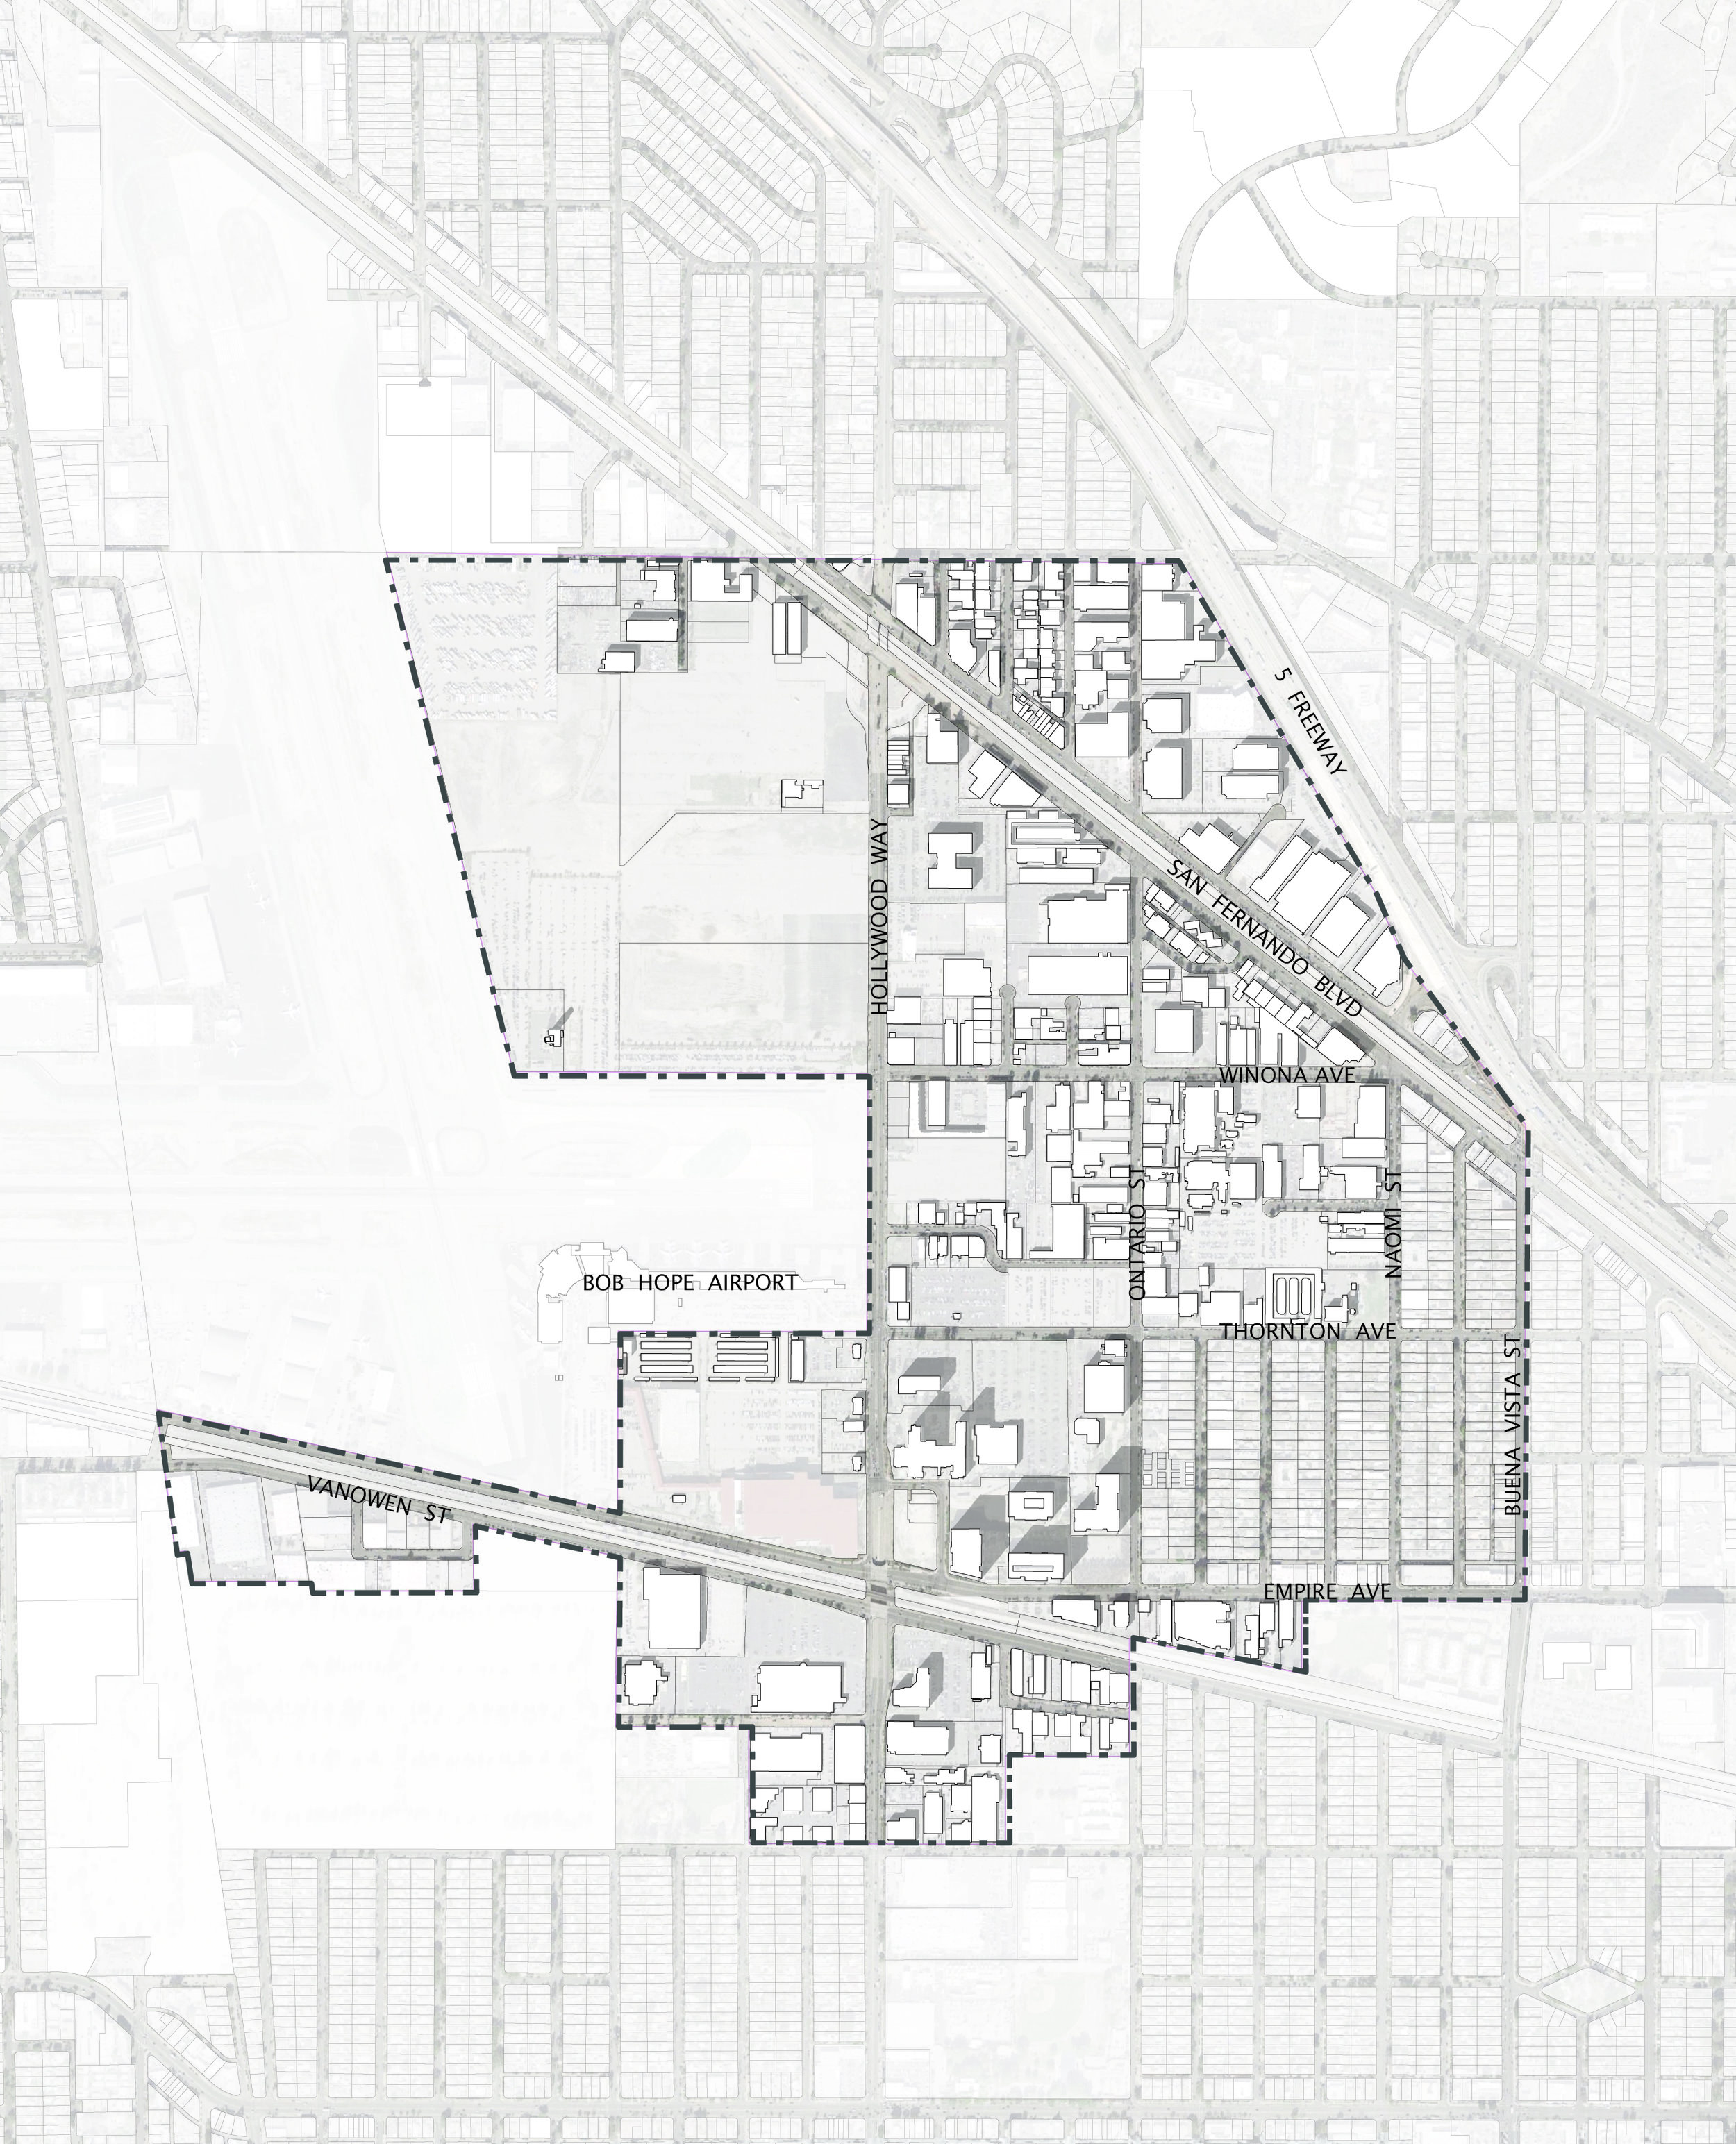 The Golden State District occupies 640 acres east of Burbank Airport. Read it's story here.